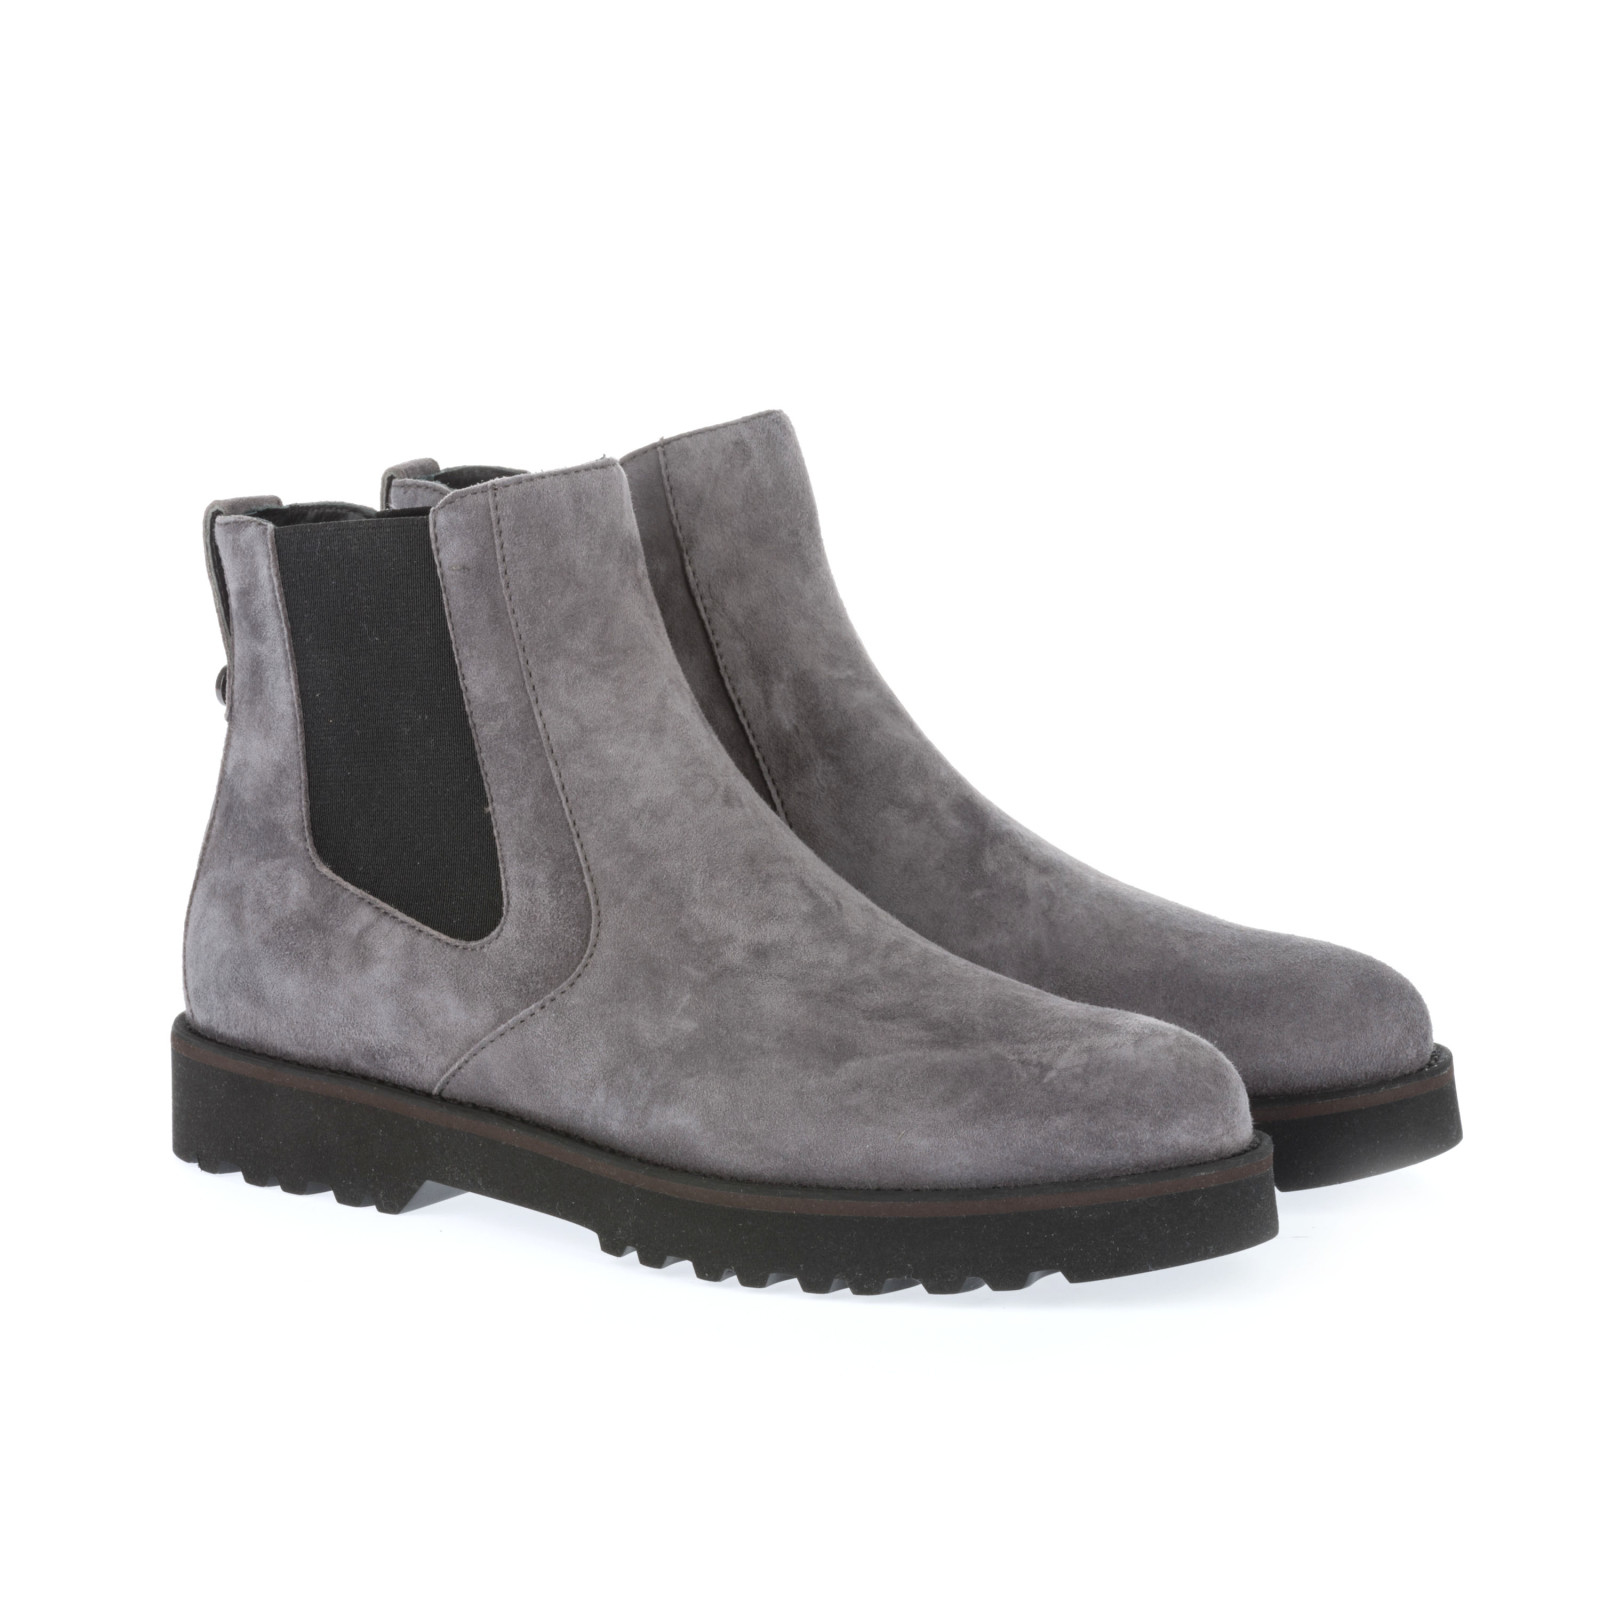 hogan grey suede ankle boots in gray grigio lyst. Black Bedroom Furniture Sets. Home Design Ideas